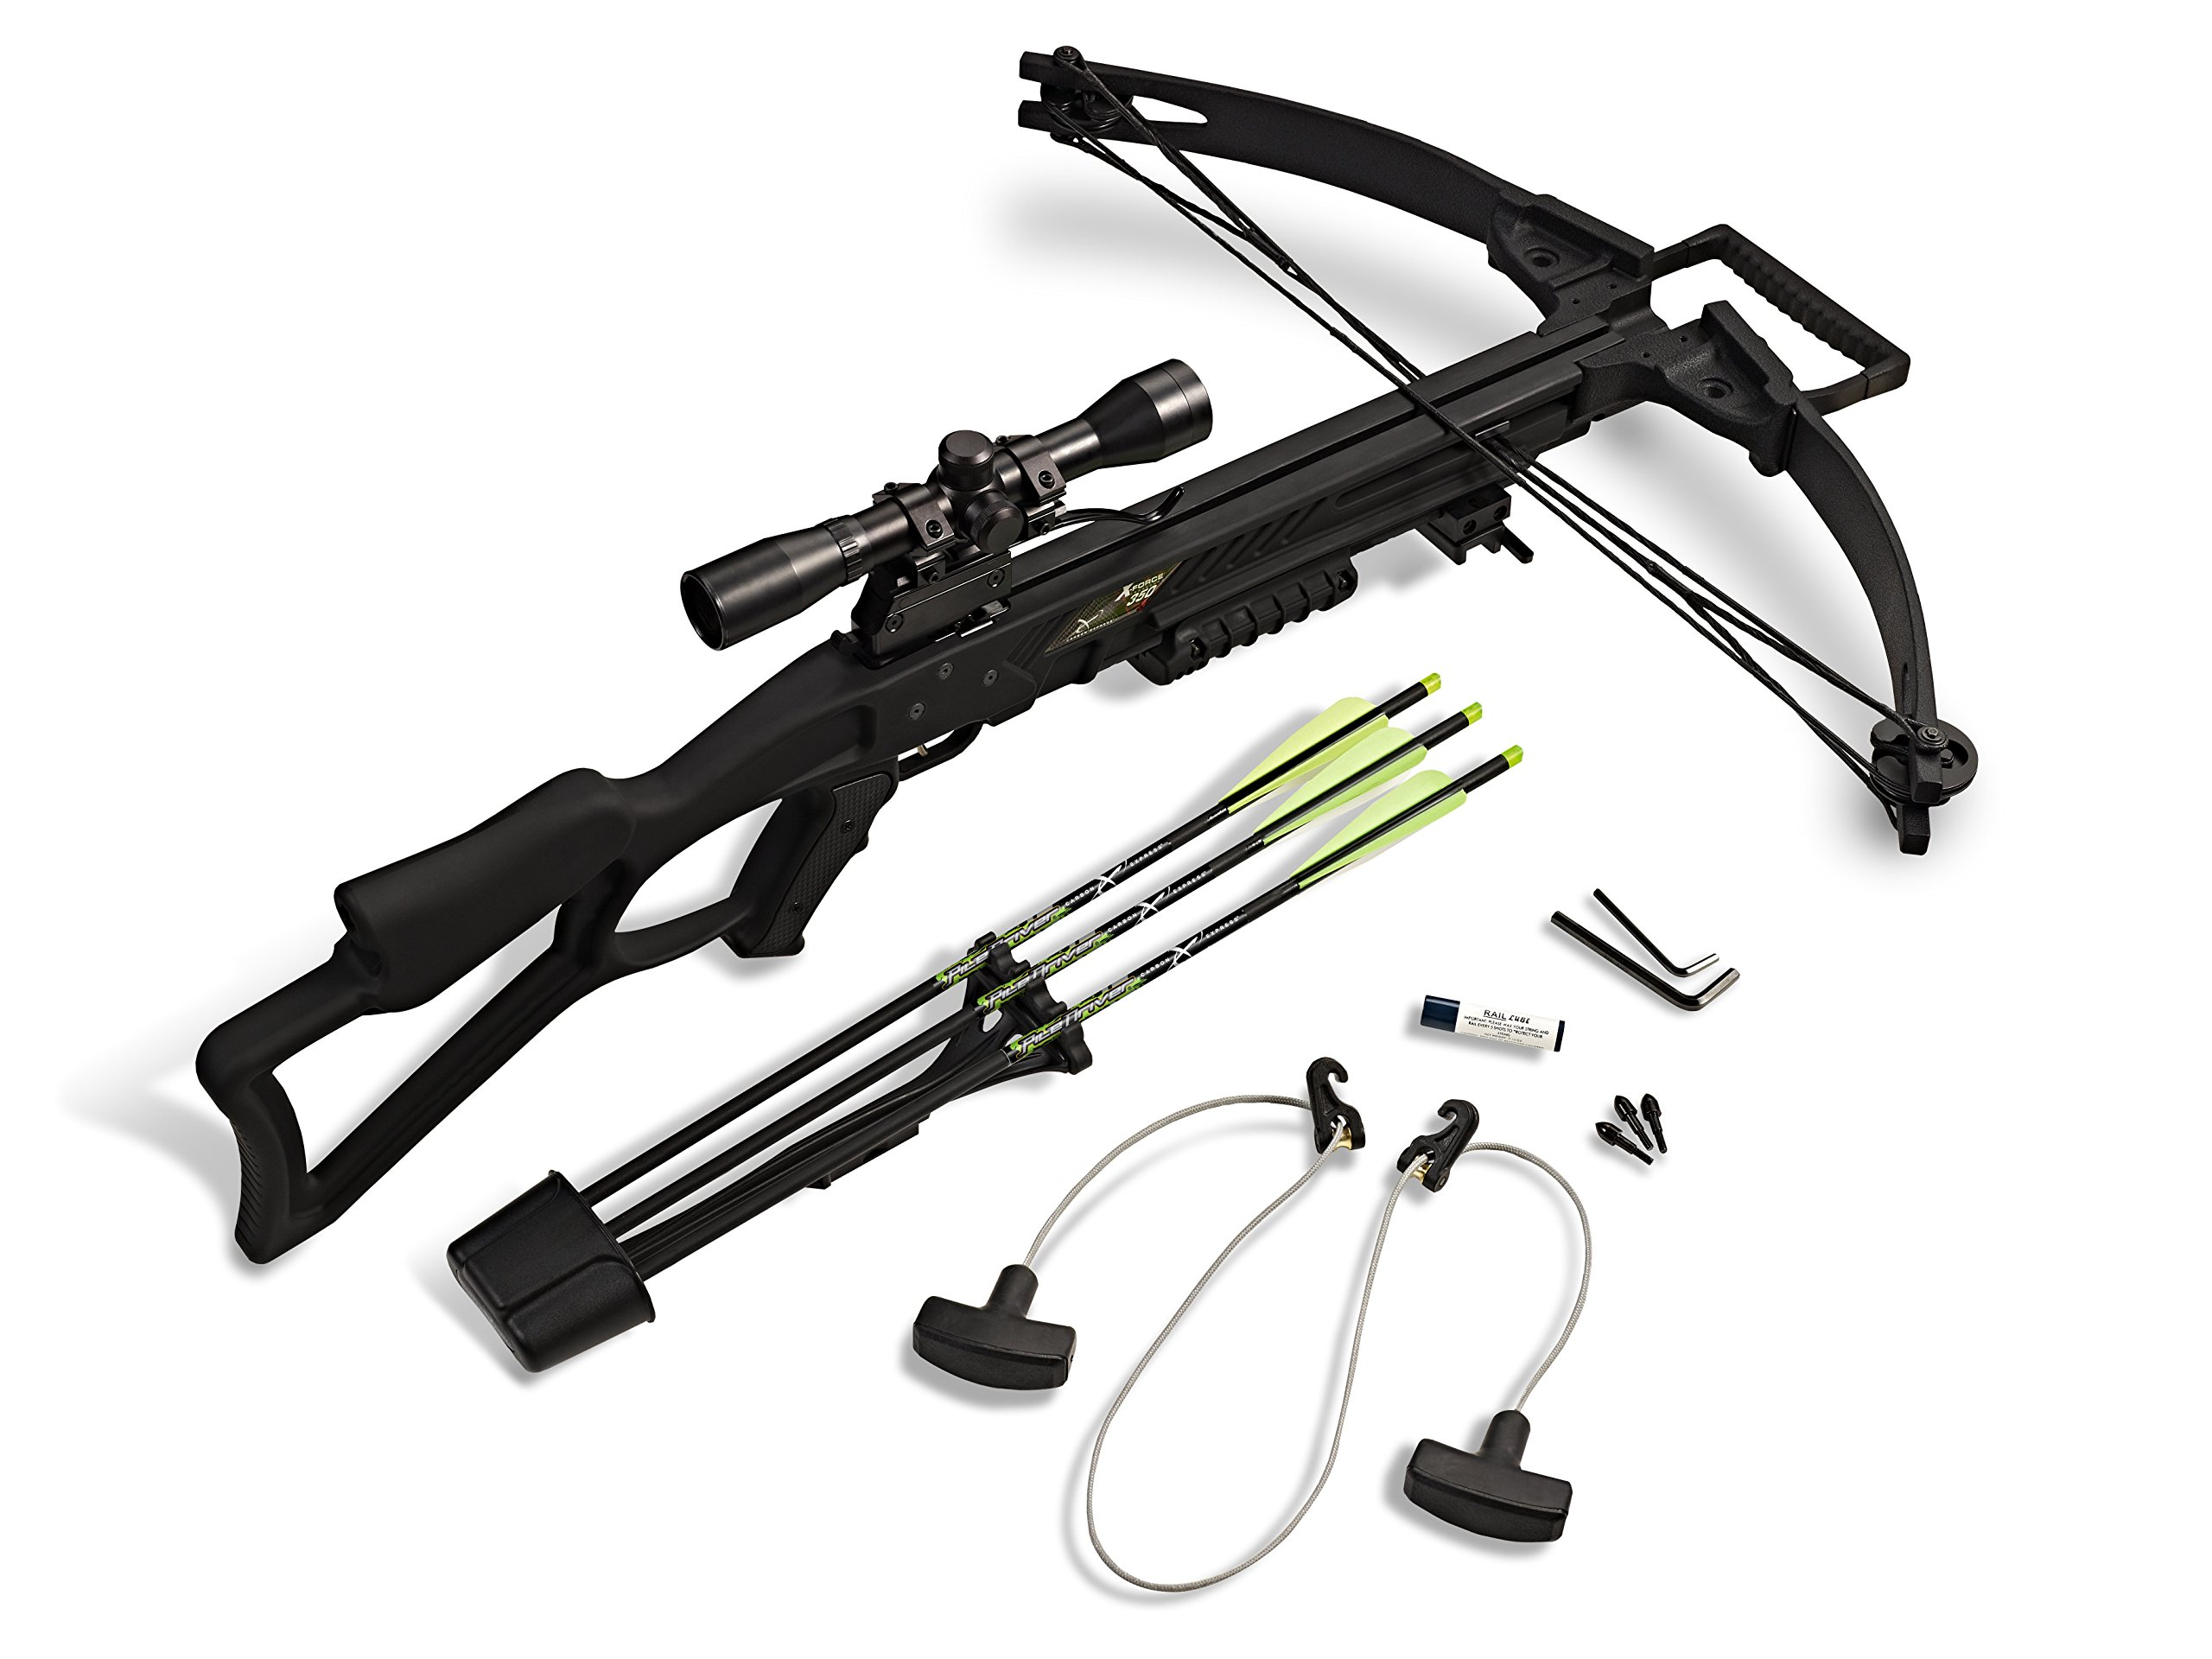 Carbon Express 20271 X-Force 350 Crossbow Kit (Rope Cocker, 3 Arrow Quiver, 3 Crossbolts, Rail Lubricant, 3 Practice Points, 4x32 Scope), Black by Carbon Express (Image #5)